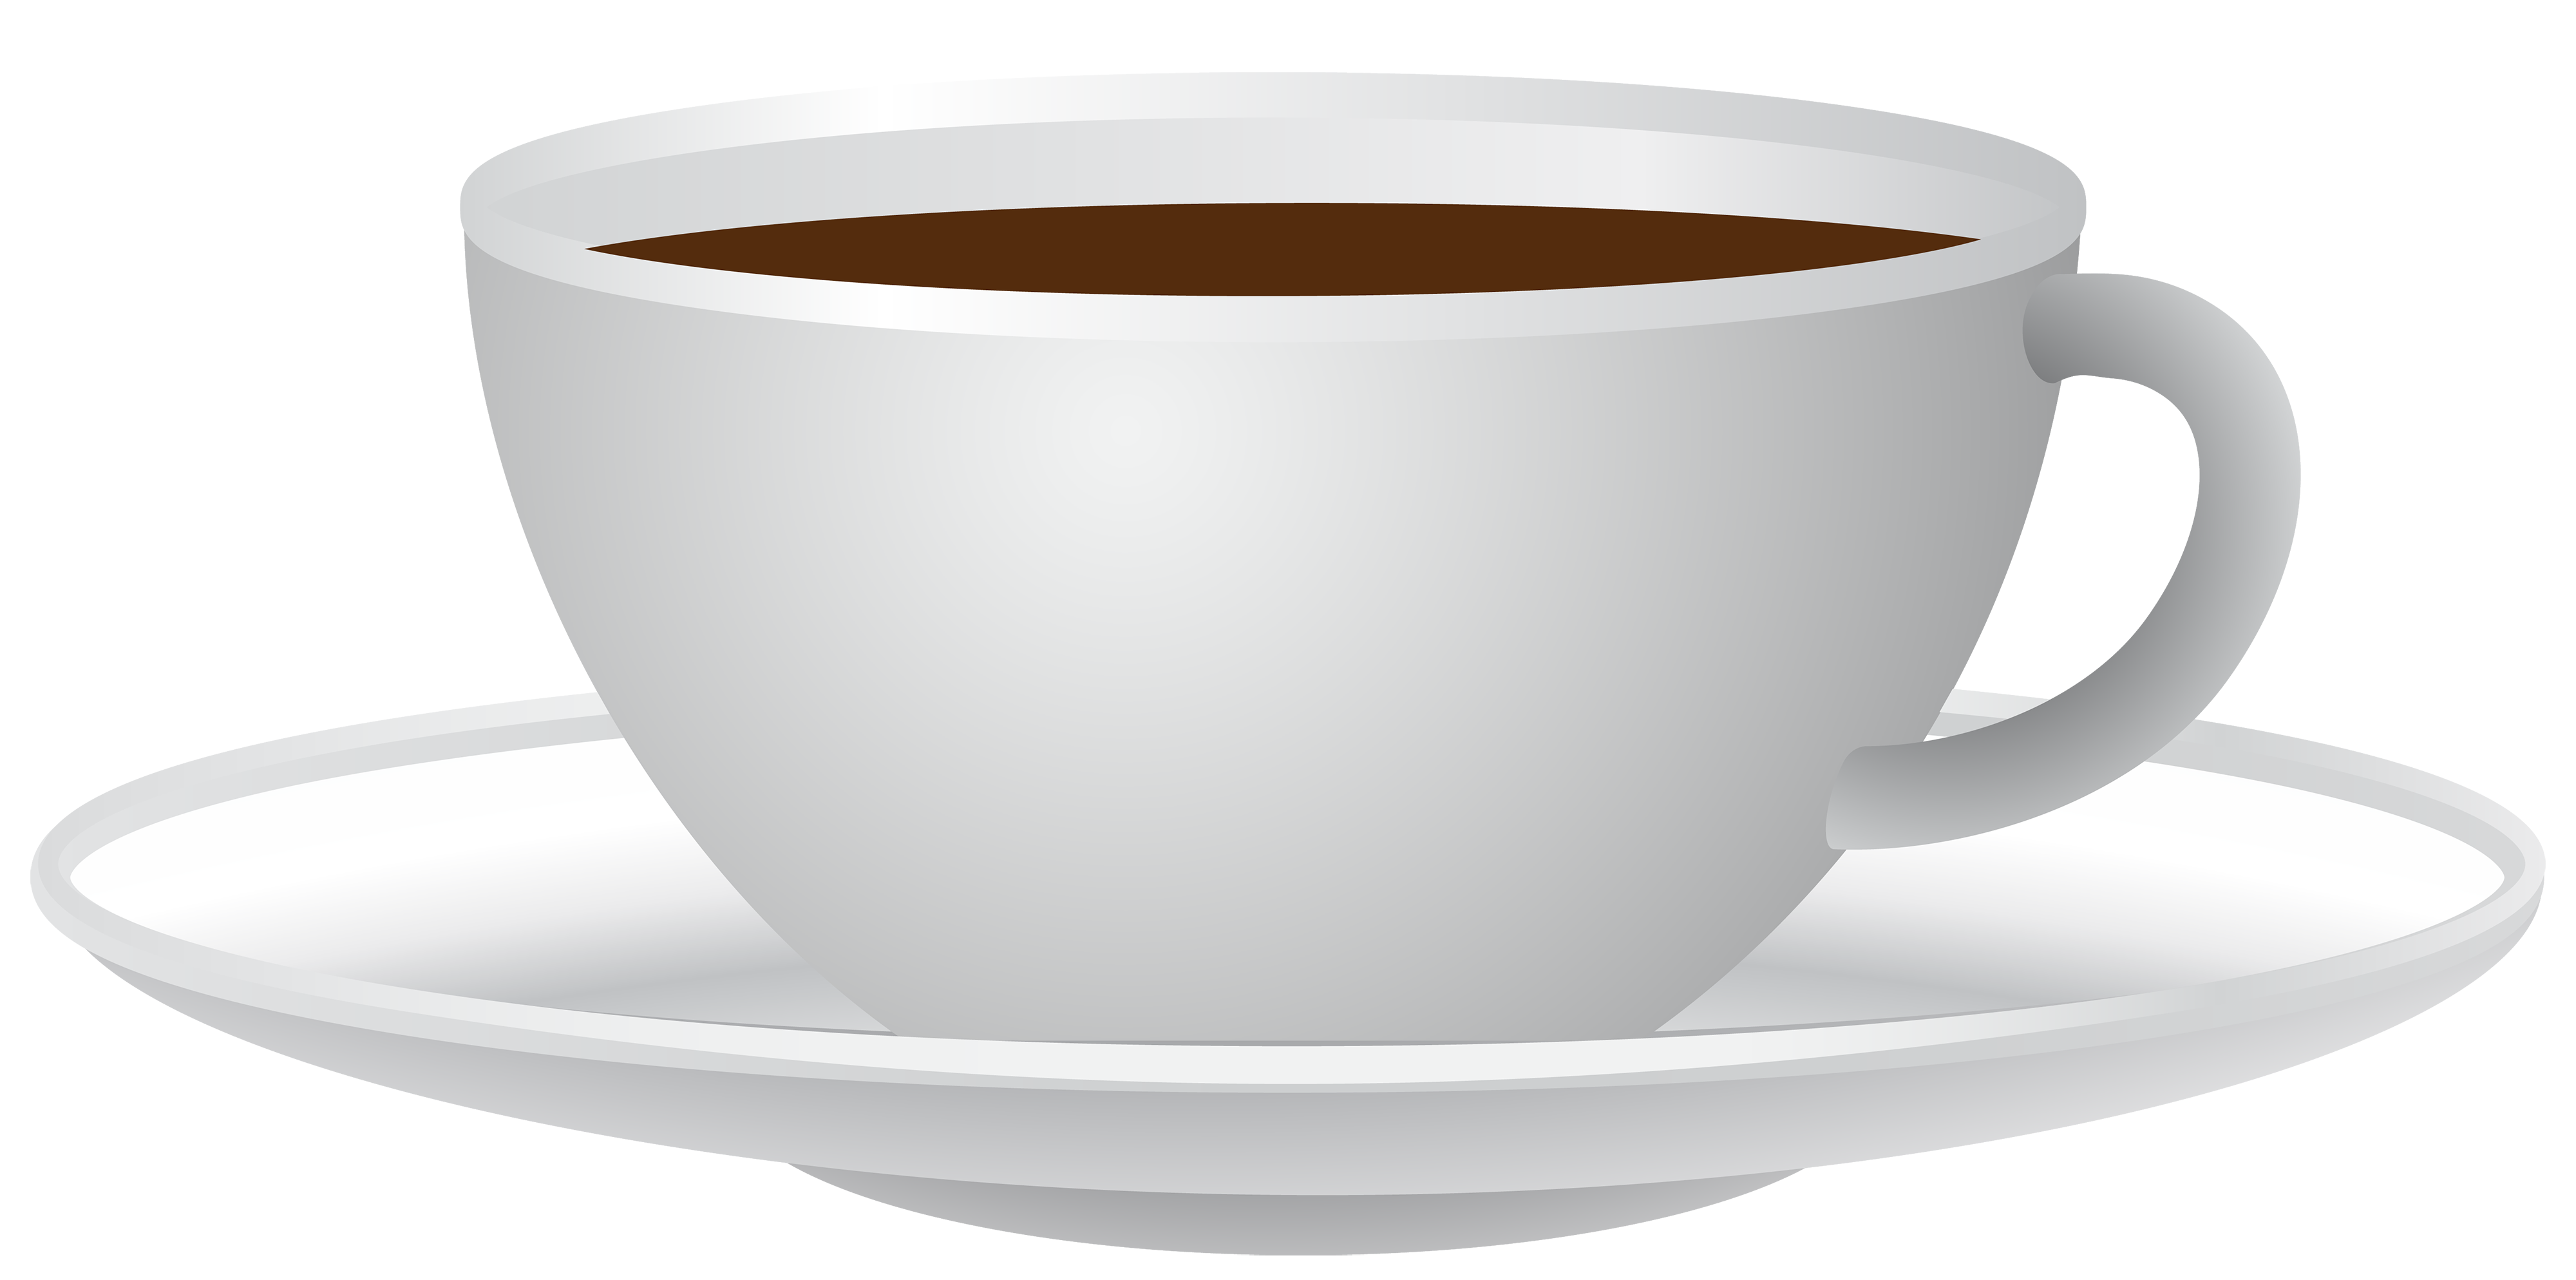 cup of coffee png